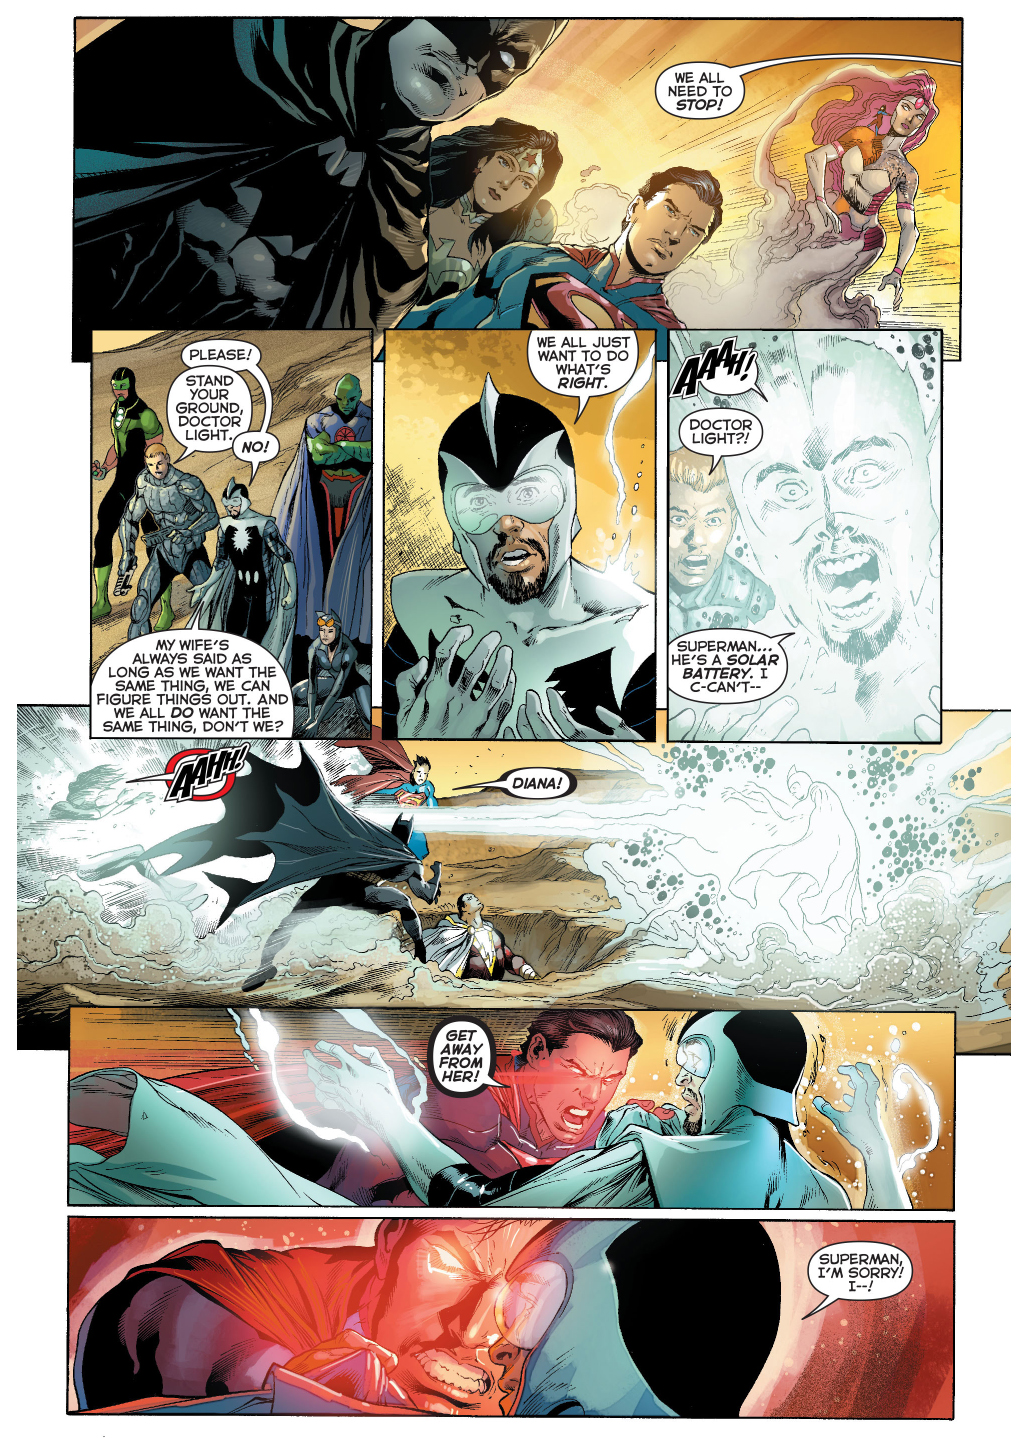 superman kills doctor light